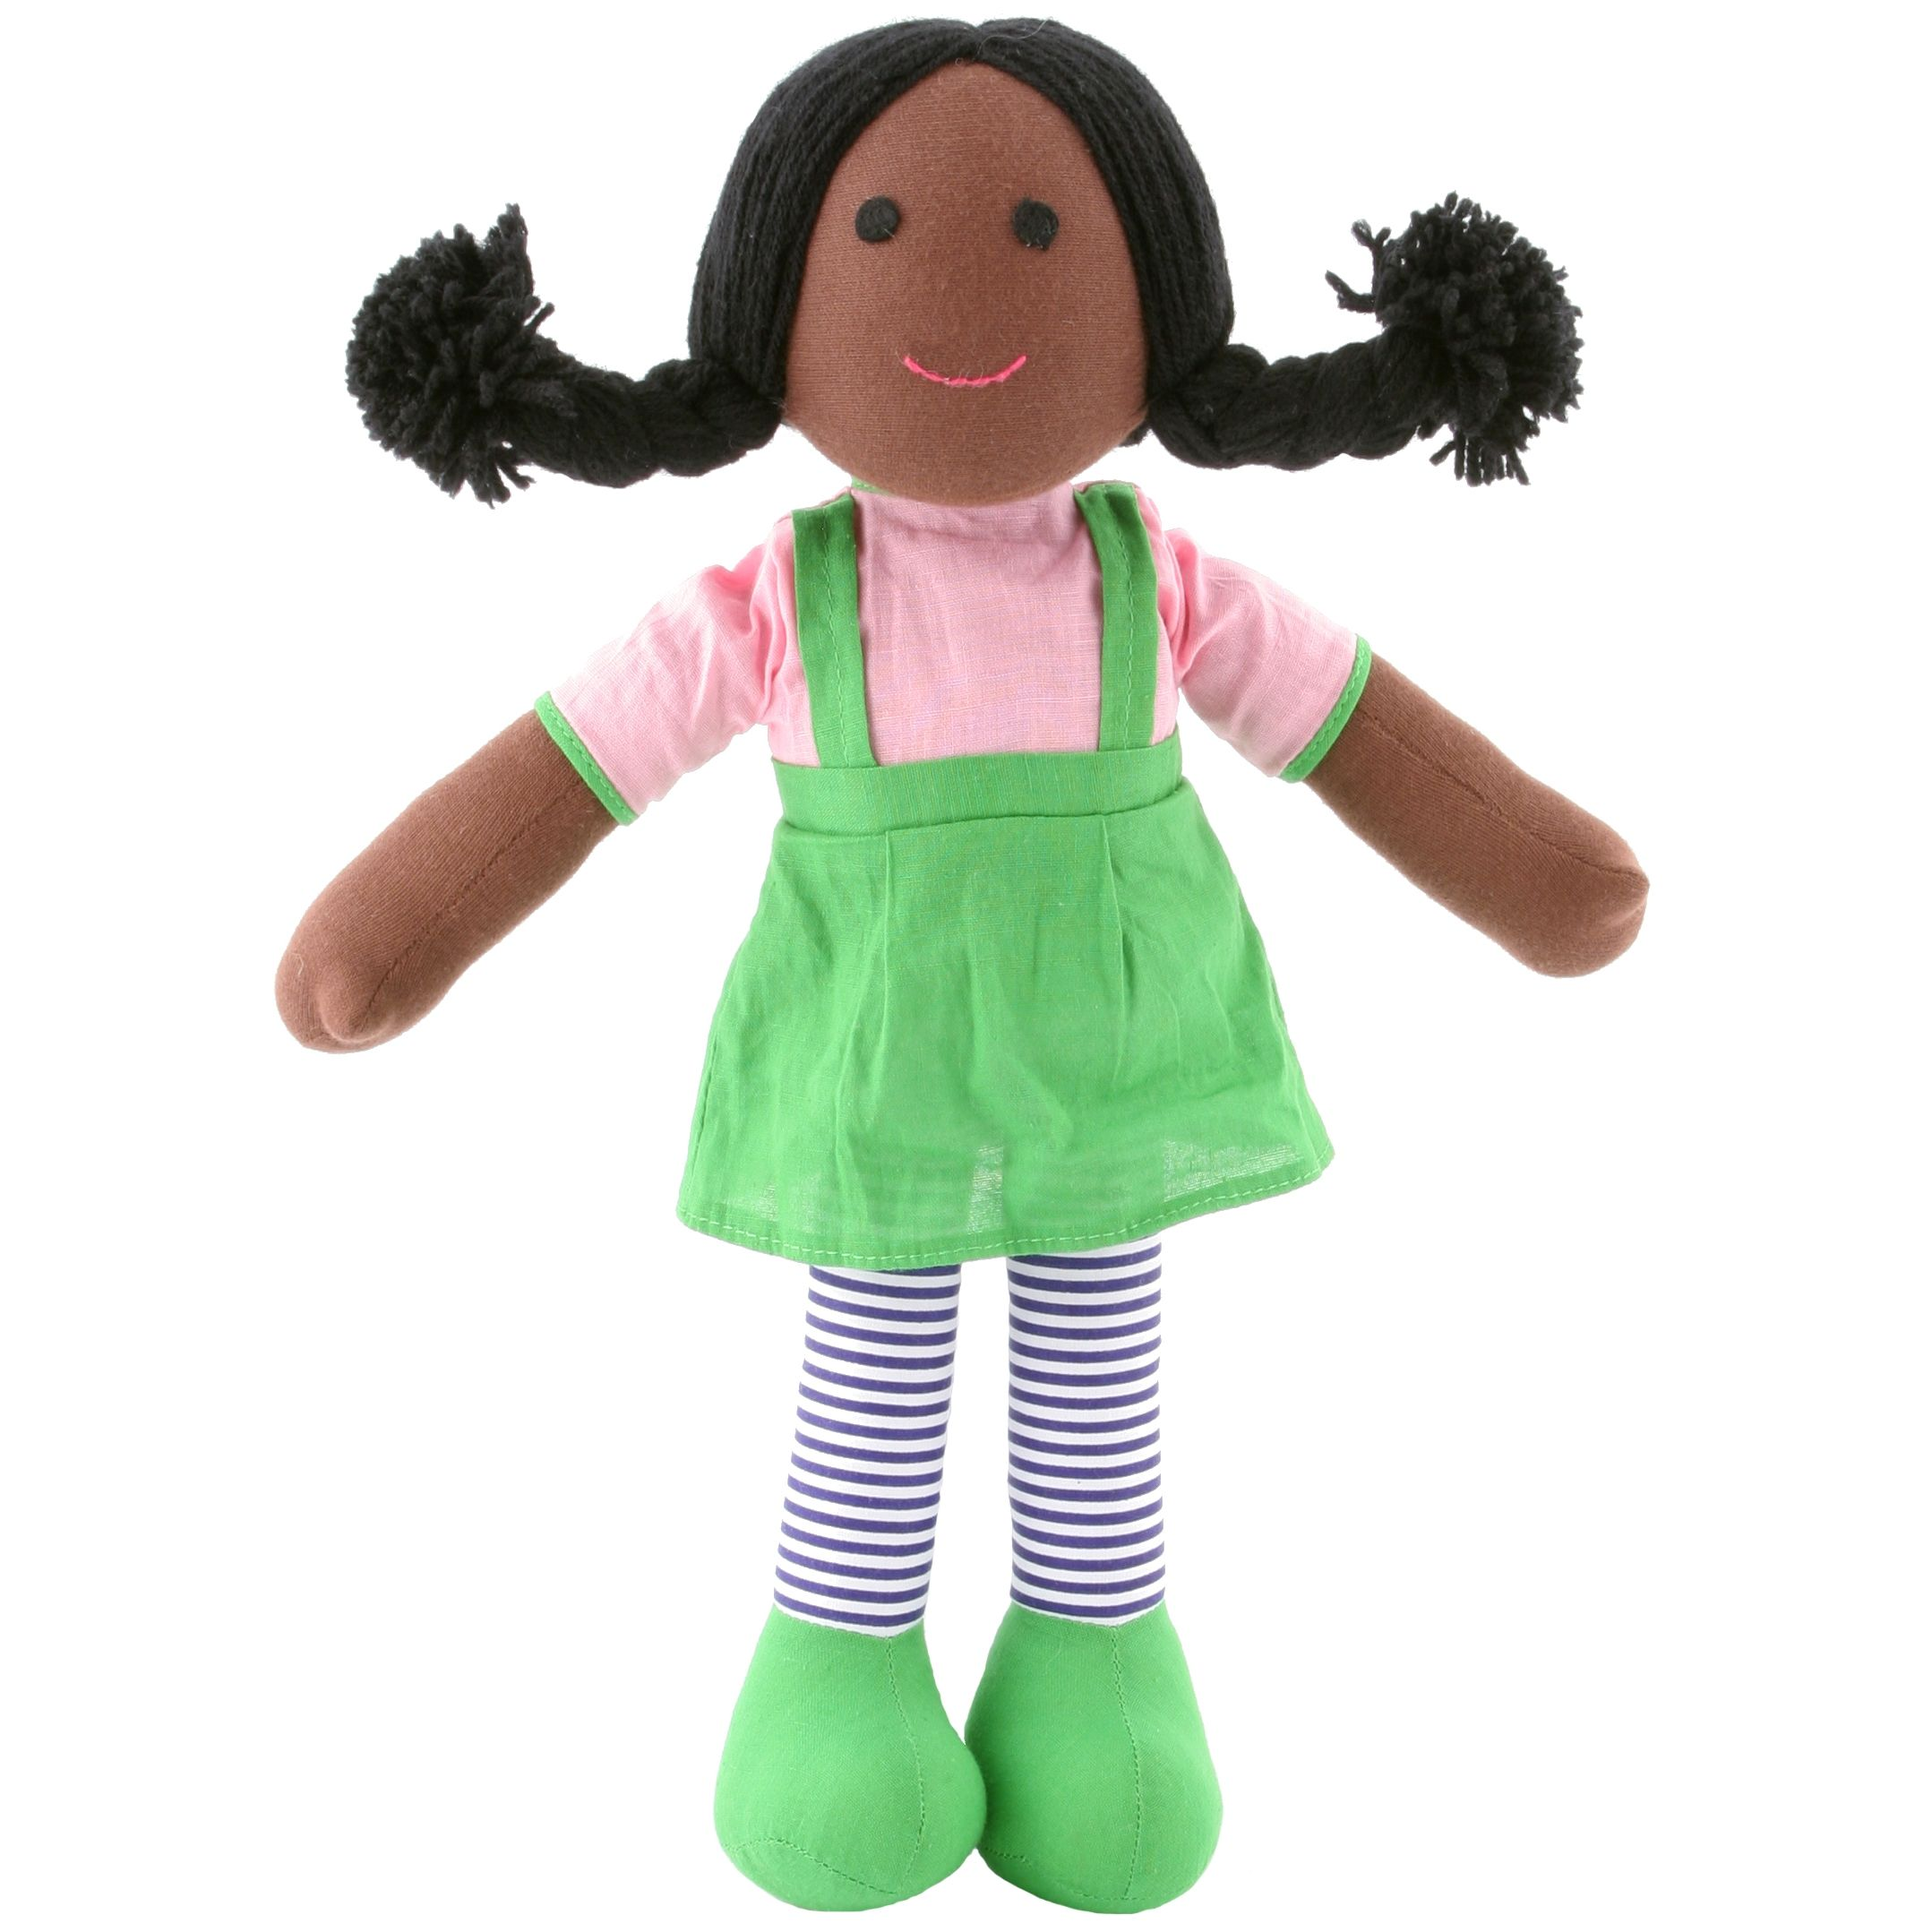 """rag dolls first to review """"Tilly Black Rag Doll"""